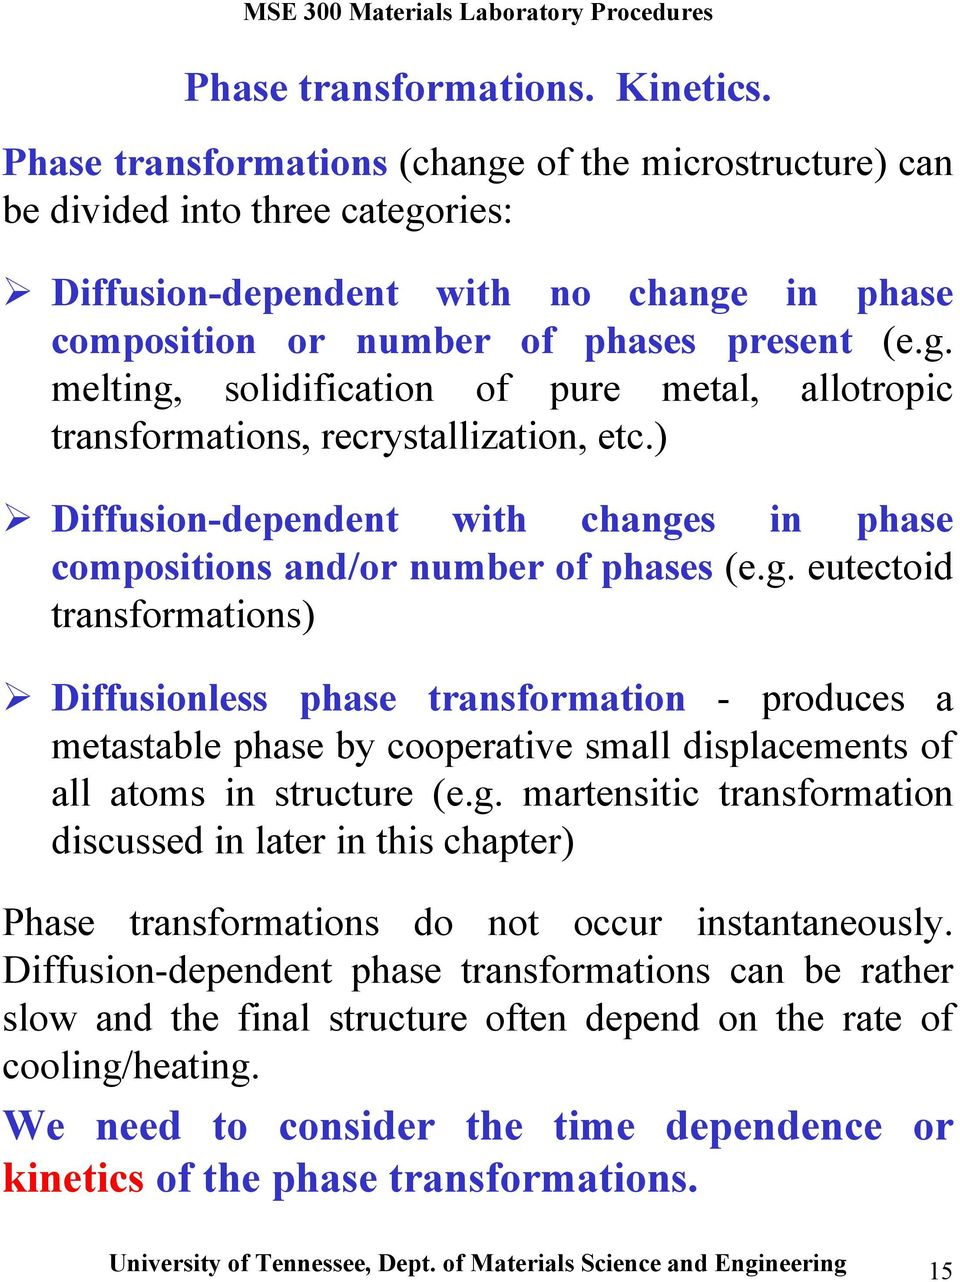 ) Diffusion-dependent with changes in phase compositions and/or number of phases (e.g. eutectoid transformations) Diffusionless phase transformation - produces a metastable phase by cooperative small displacements of all atoms in structure (e.